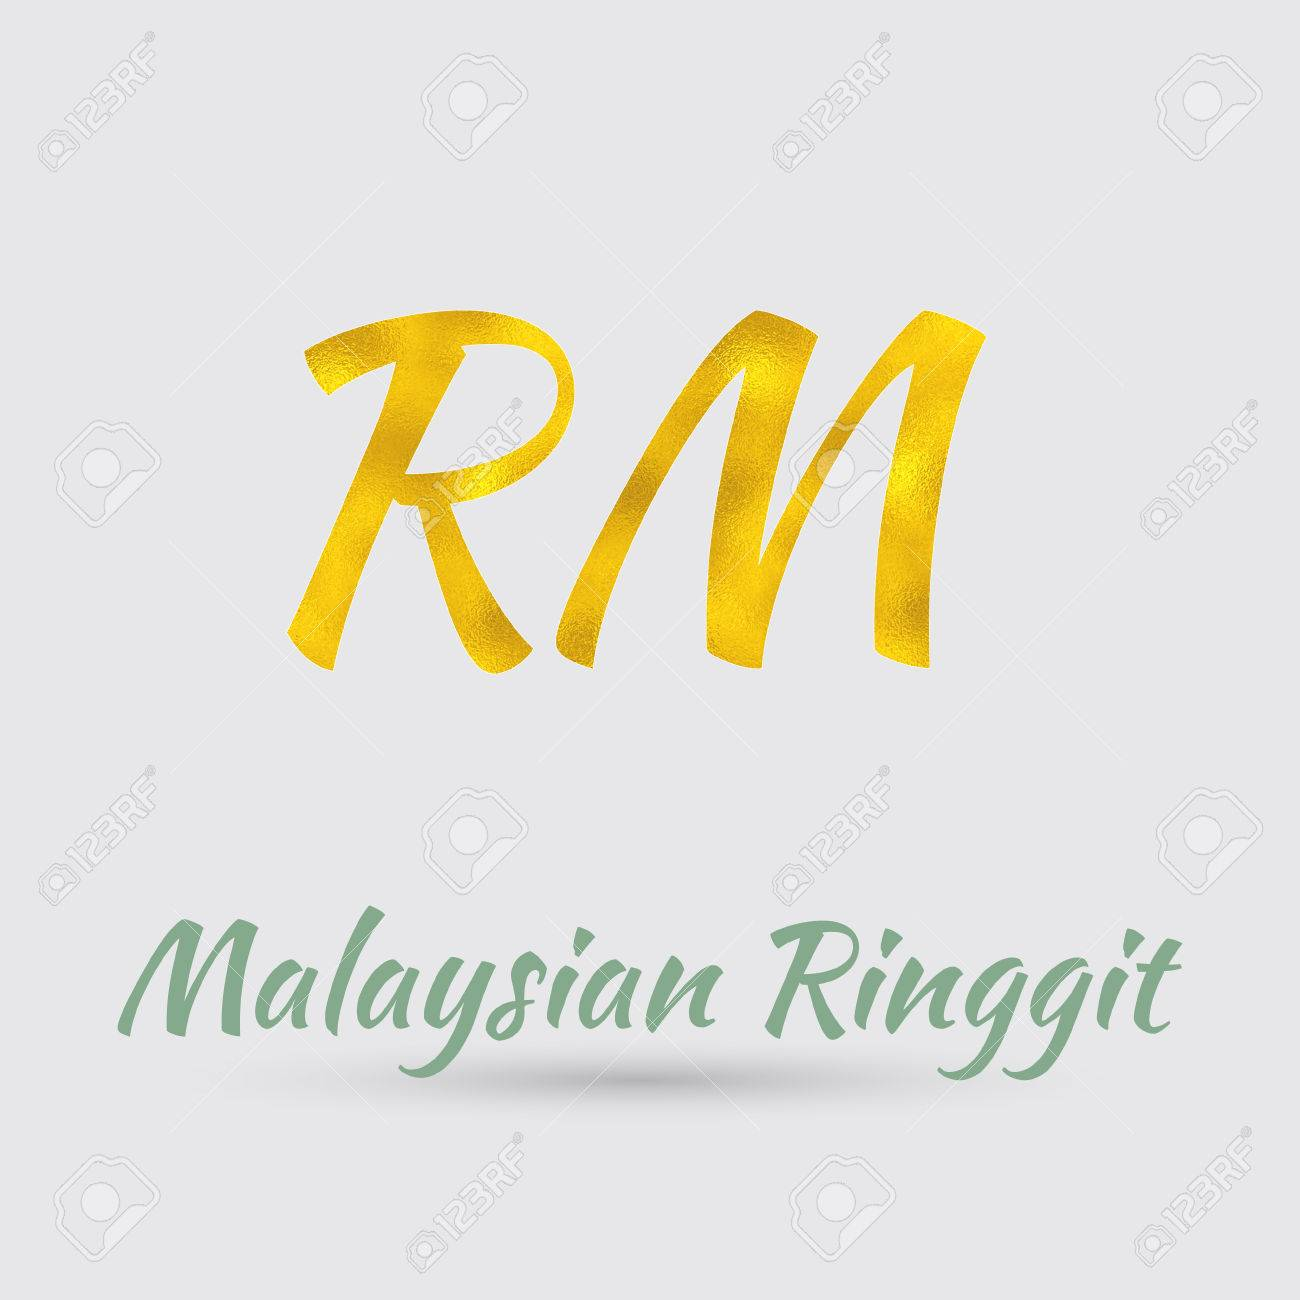 Symbol of the malaysian ringgit currency with golden texture symbol of the malaysian ringgit currency with golden texture text with the malaysian currency name buycottarizona Image collections